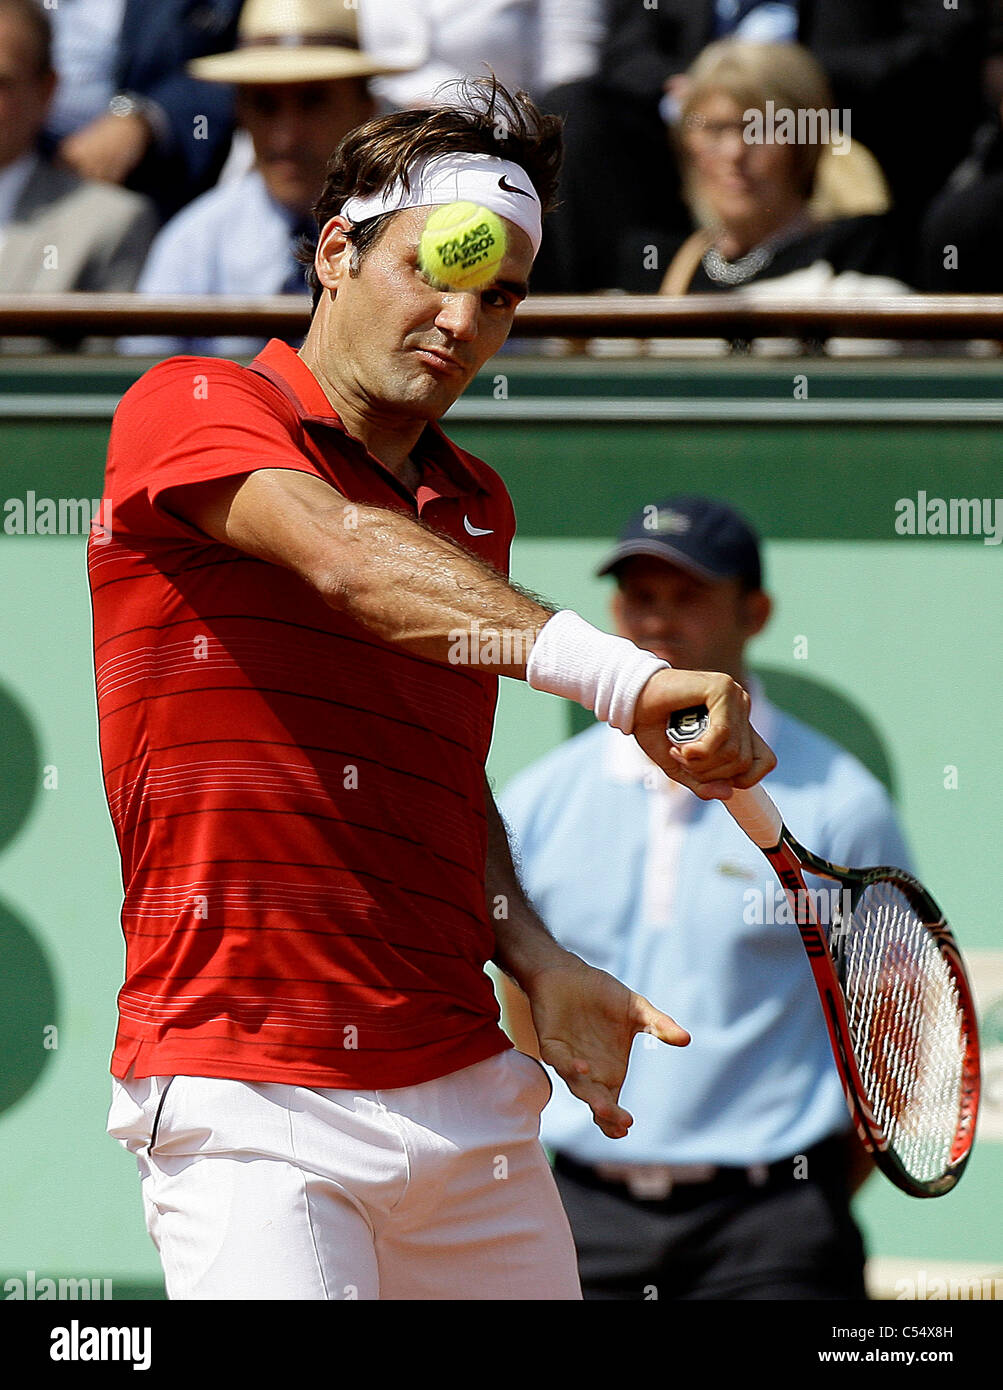 Roger Federer in action against World number one and defending champion Rafael Nadal in the Final of the French Open at Roland G Stock Photo